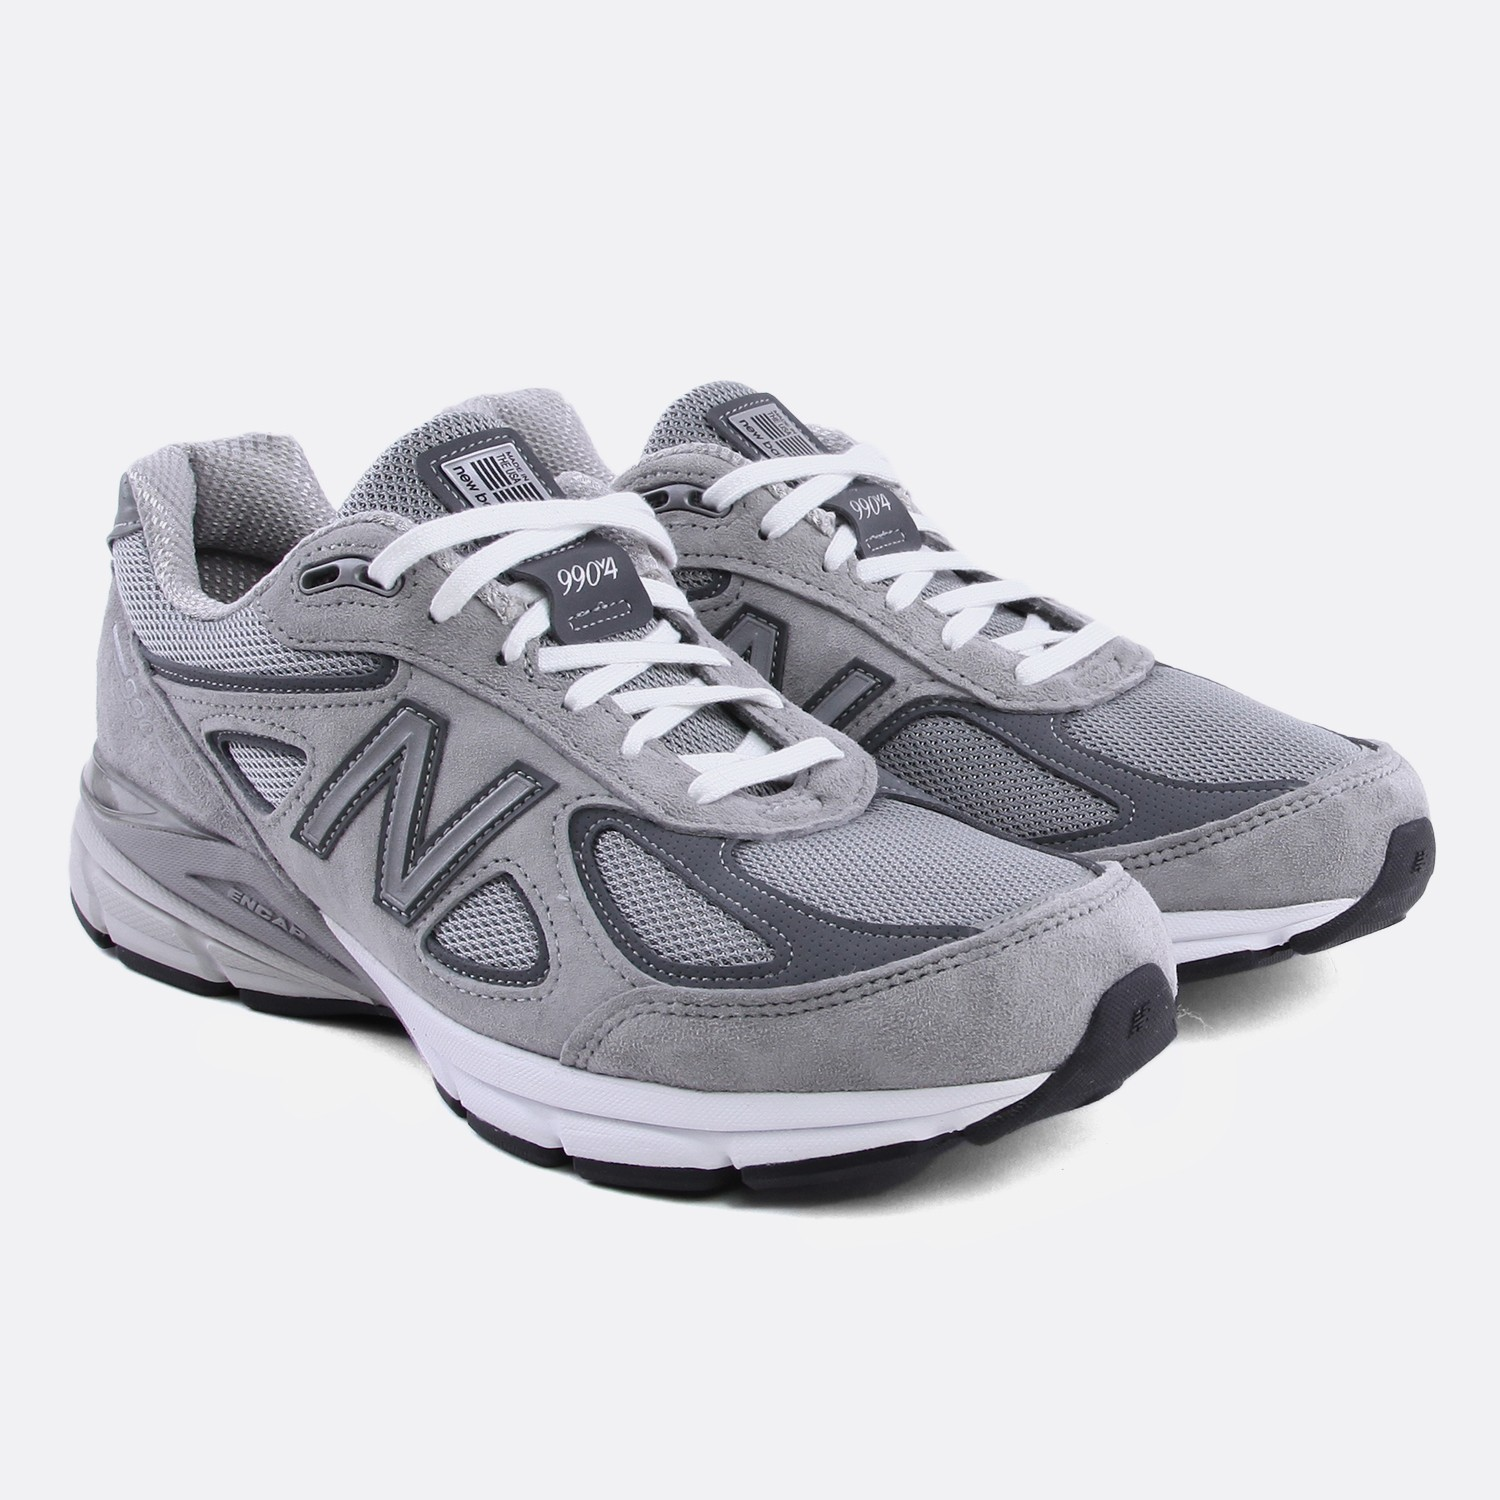 New Balance M 990 D GL4 Cool Grey, Grey/Castle Rock, 42